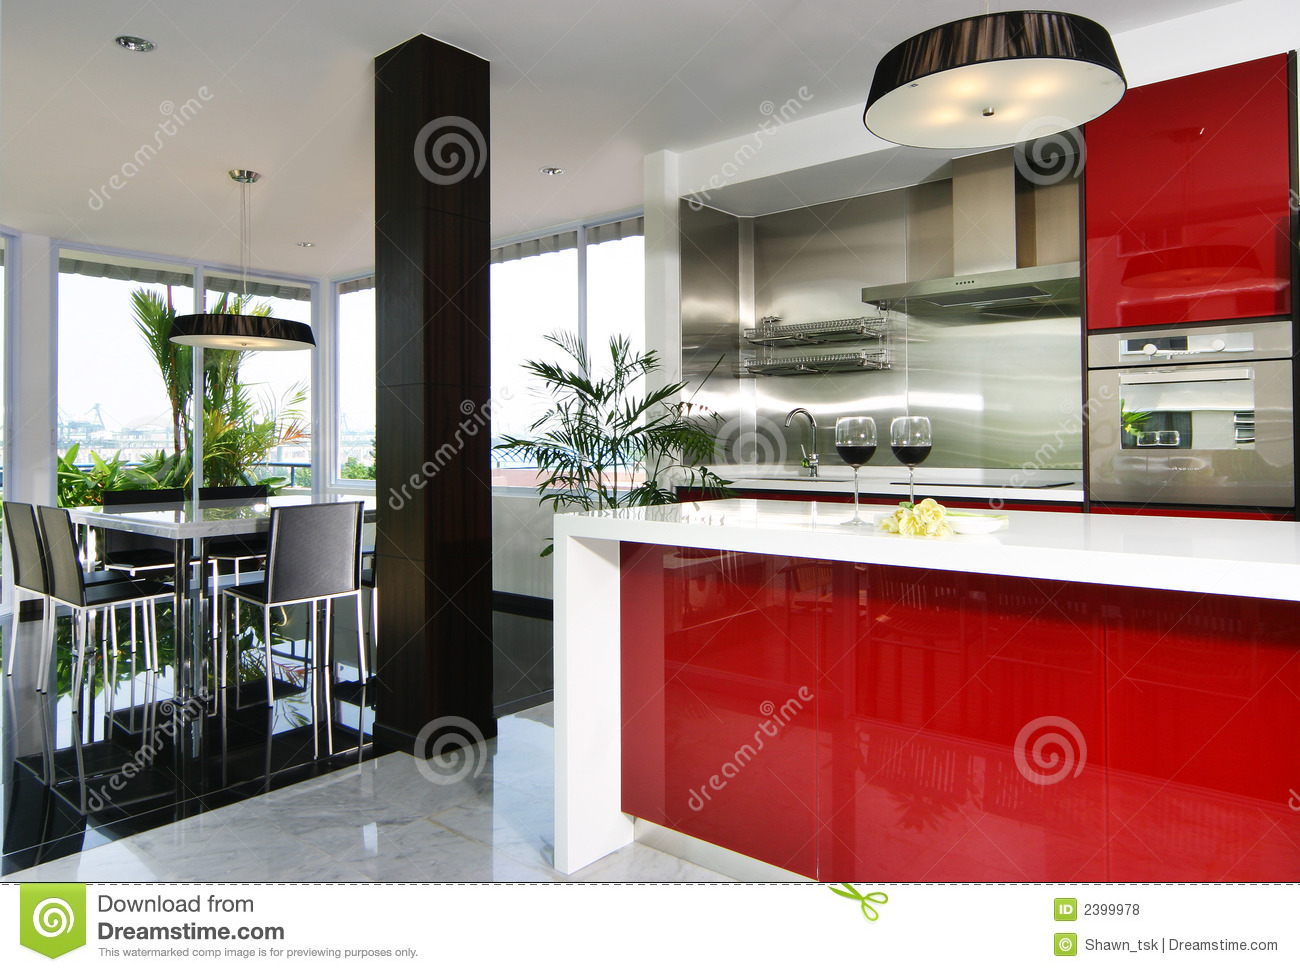 Interior design kitchen stock photo image of gloss for Home interior design photo gallery